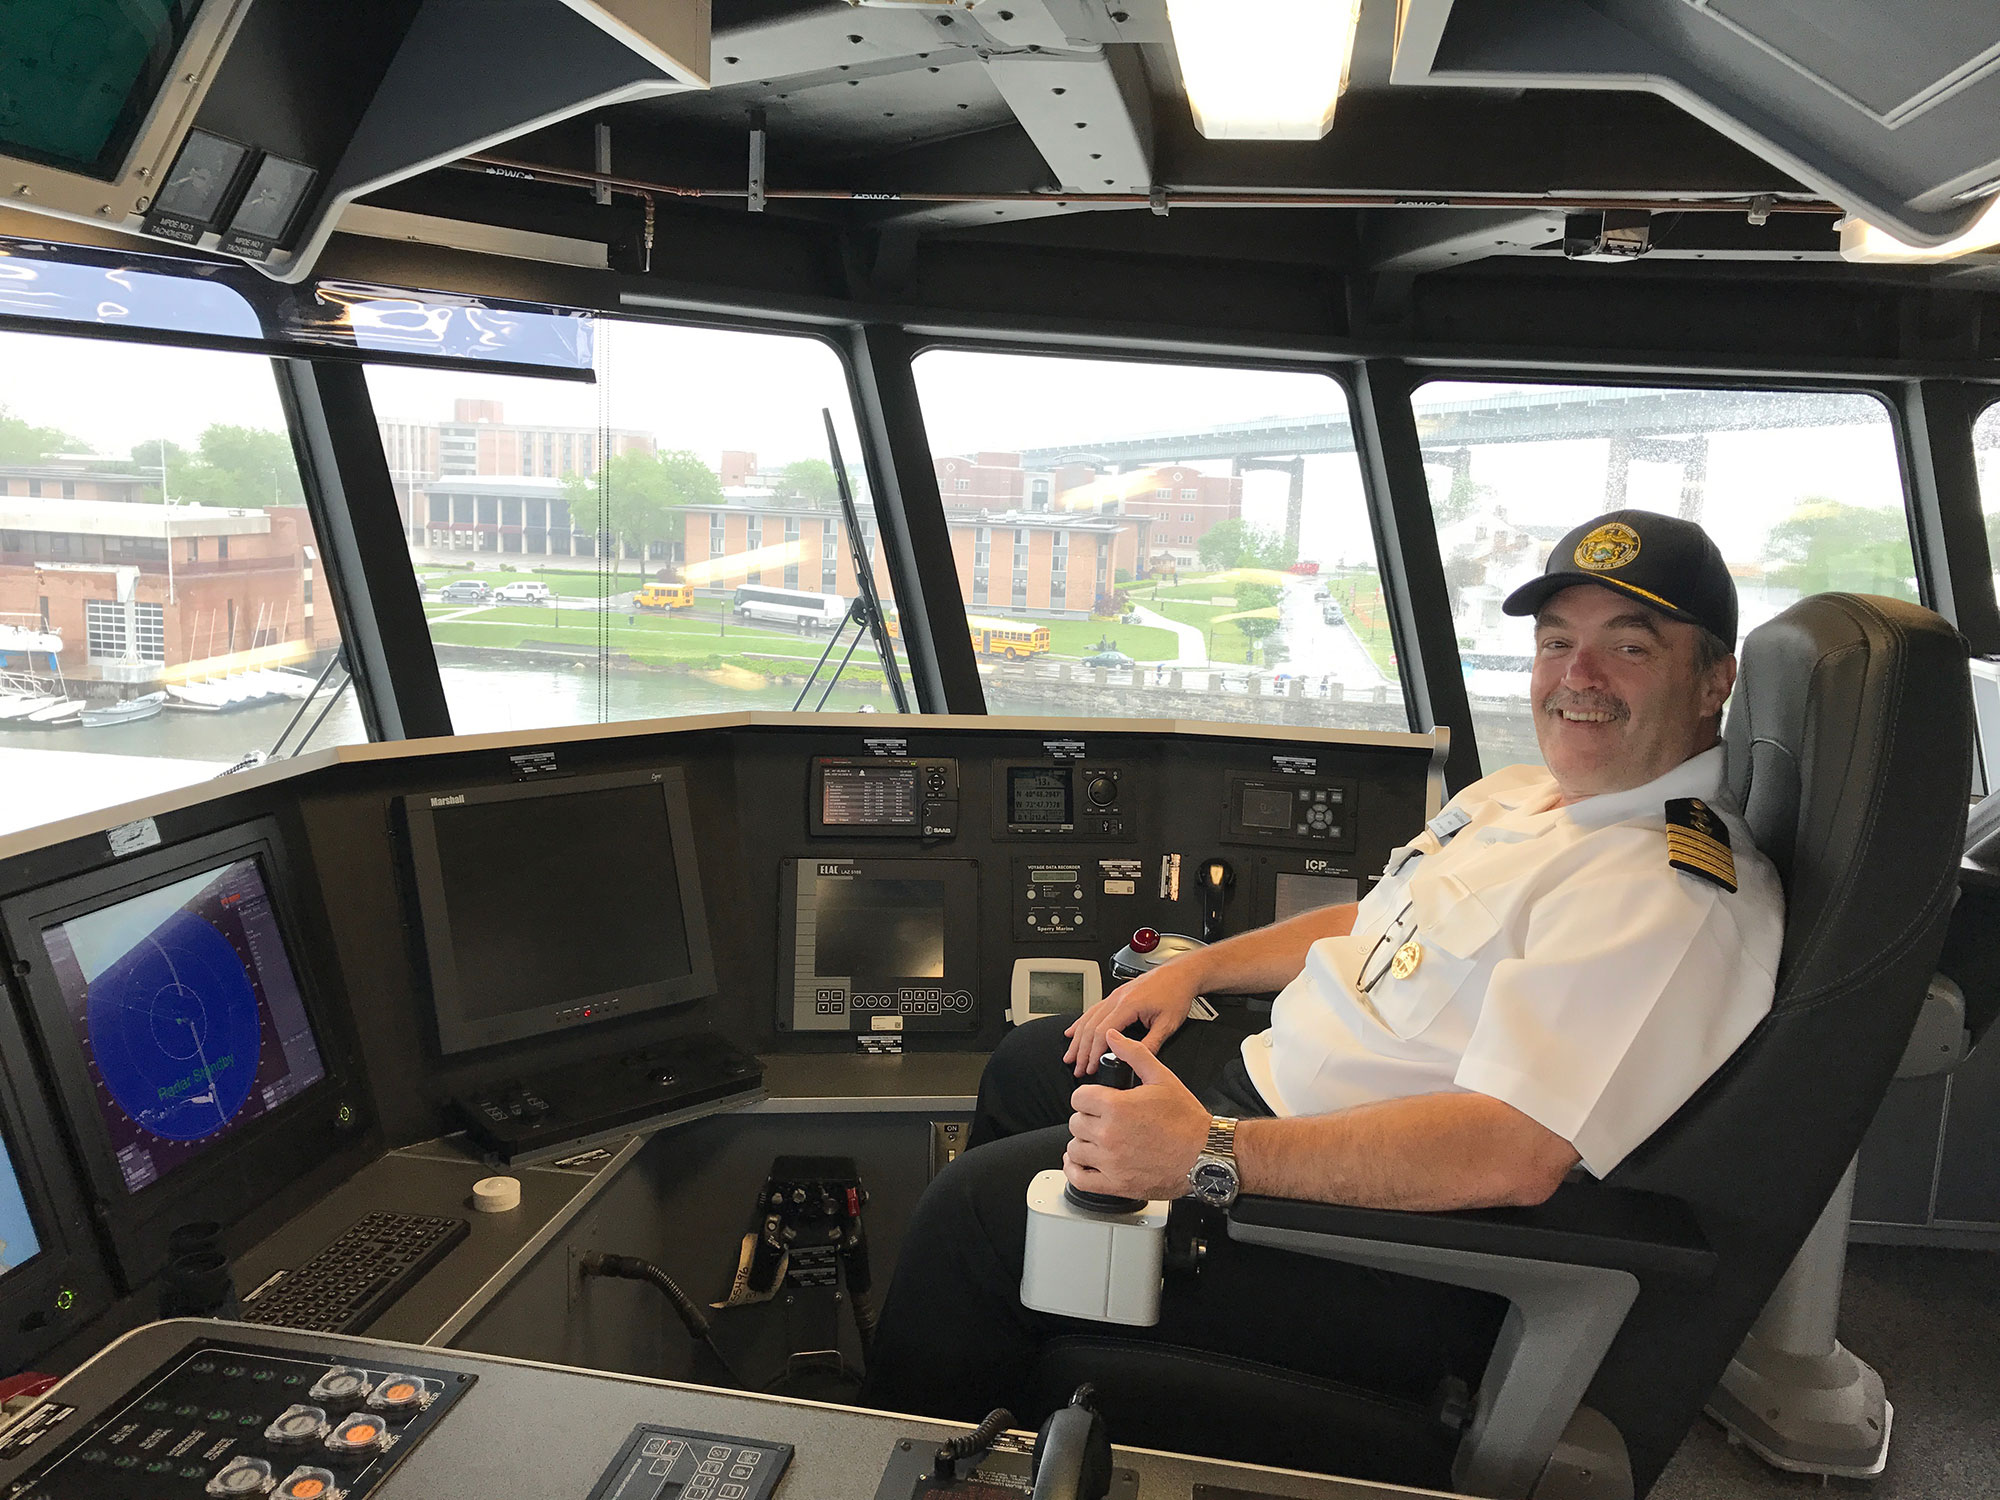 Capt. David Gommo of SUNY Maritime at the helm of the USNS Yuma ship, docked at the Maritime campus.